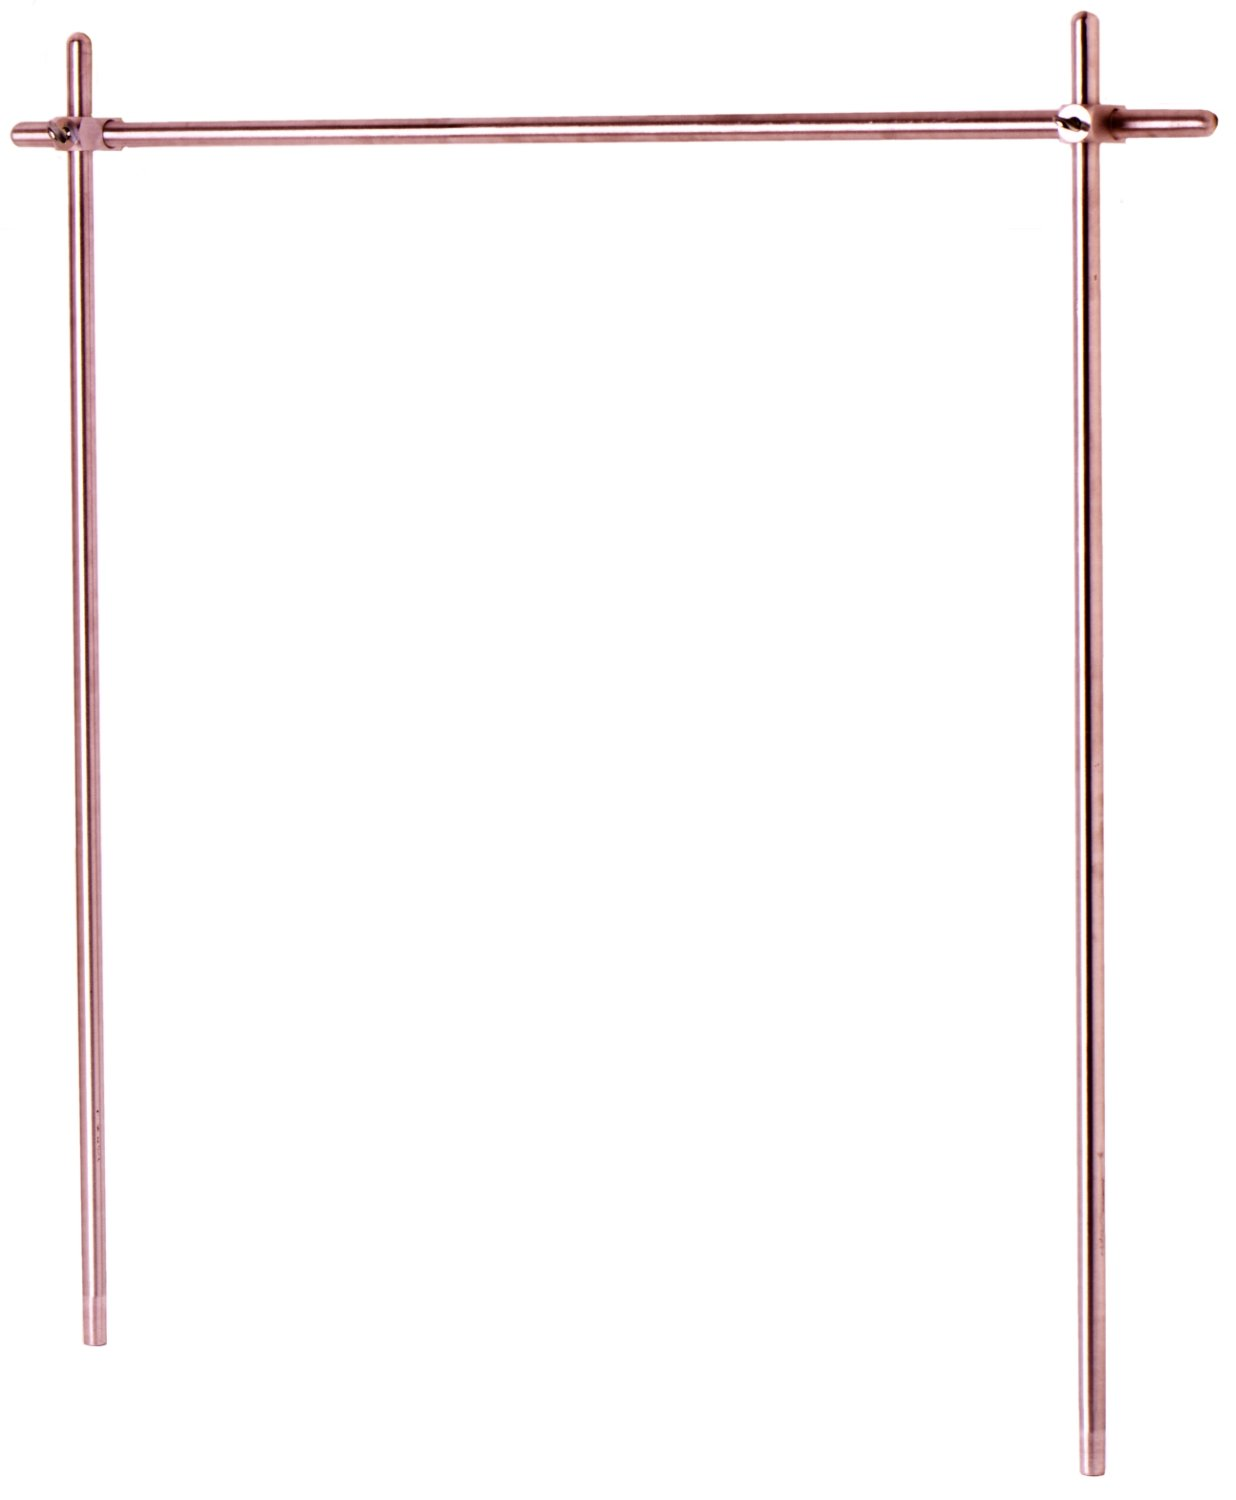 T&S Brass BL-9000-05 Upright Aluminum Rod, 3/4-Inch Diameter, 39-Inch Overall Length